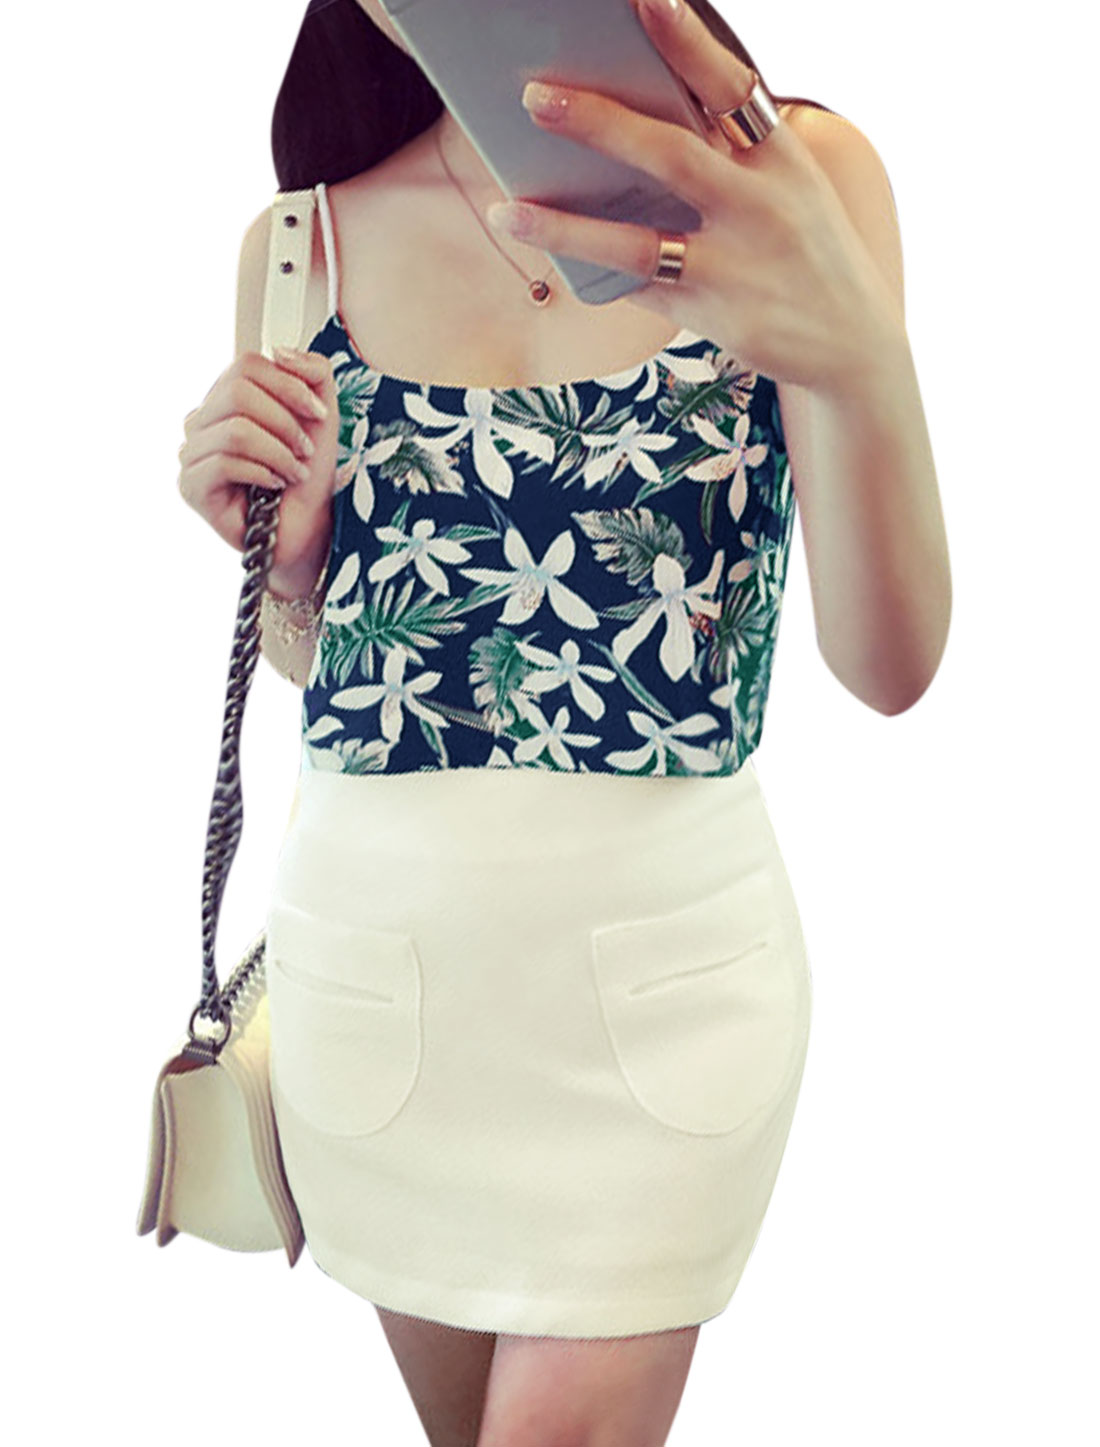 Woman Floral Prints Chiffon Crop Top w Pocketed Straight Skirt Set Dark Blue White XS